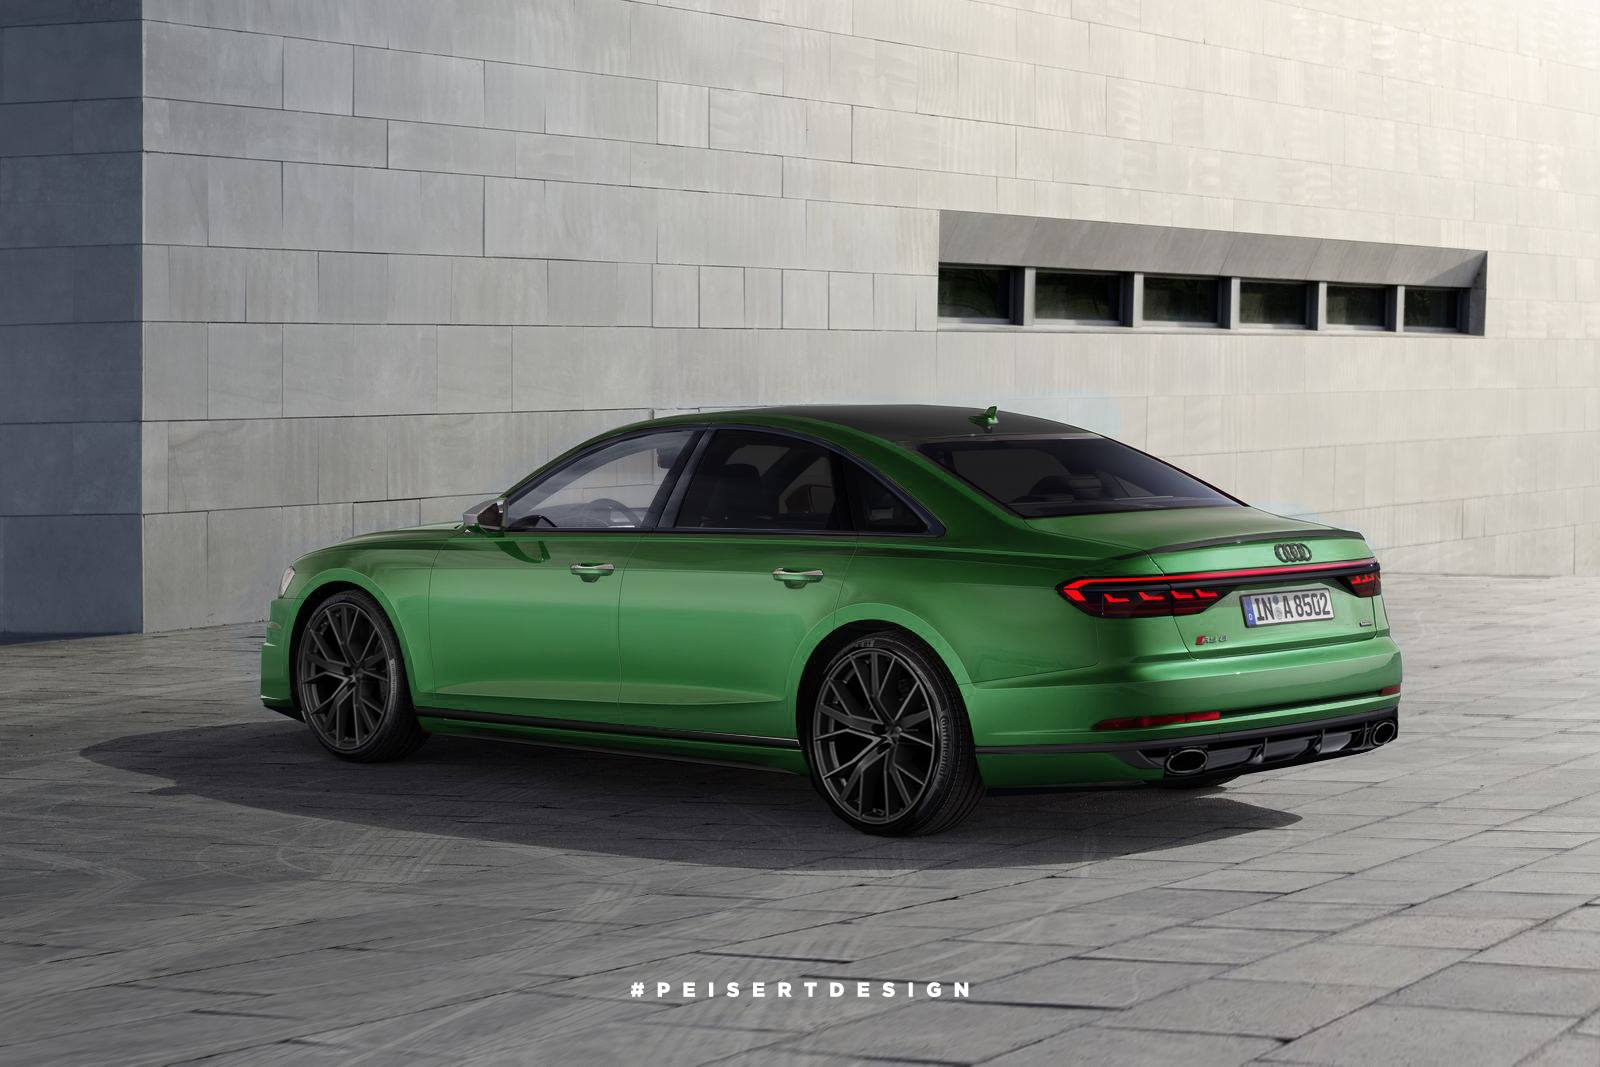 2020 Audi Rs8 And 2019 S8 Sedans Rendered Which Is Better